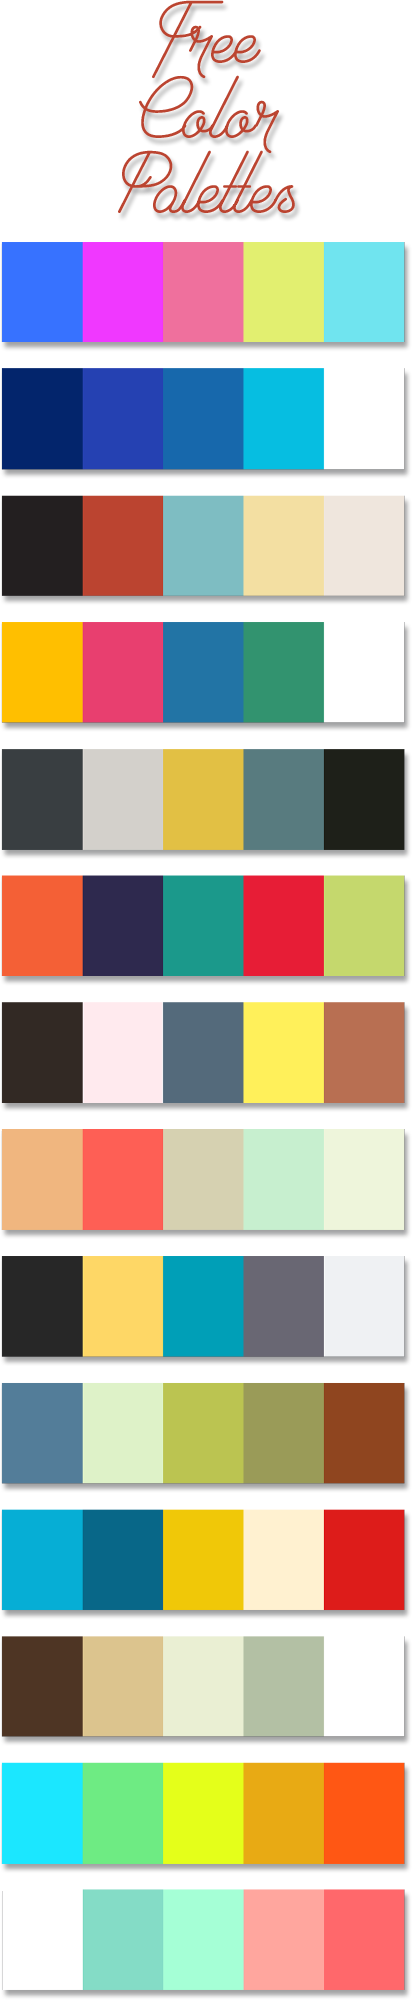 https://cesstrelle.files.wordpress.com/2015/11/hg-freecolorpalettes-2.png?w=620